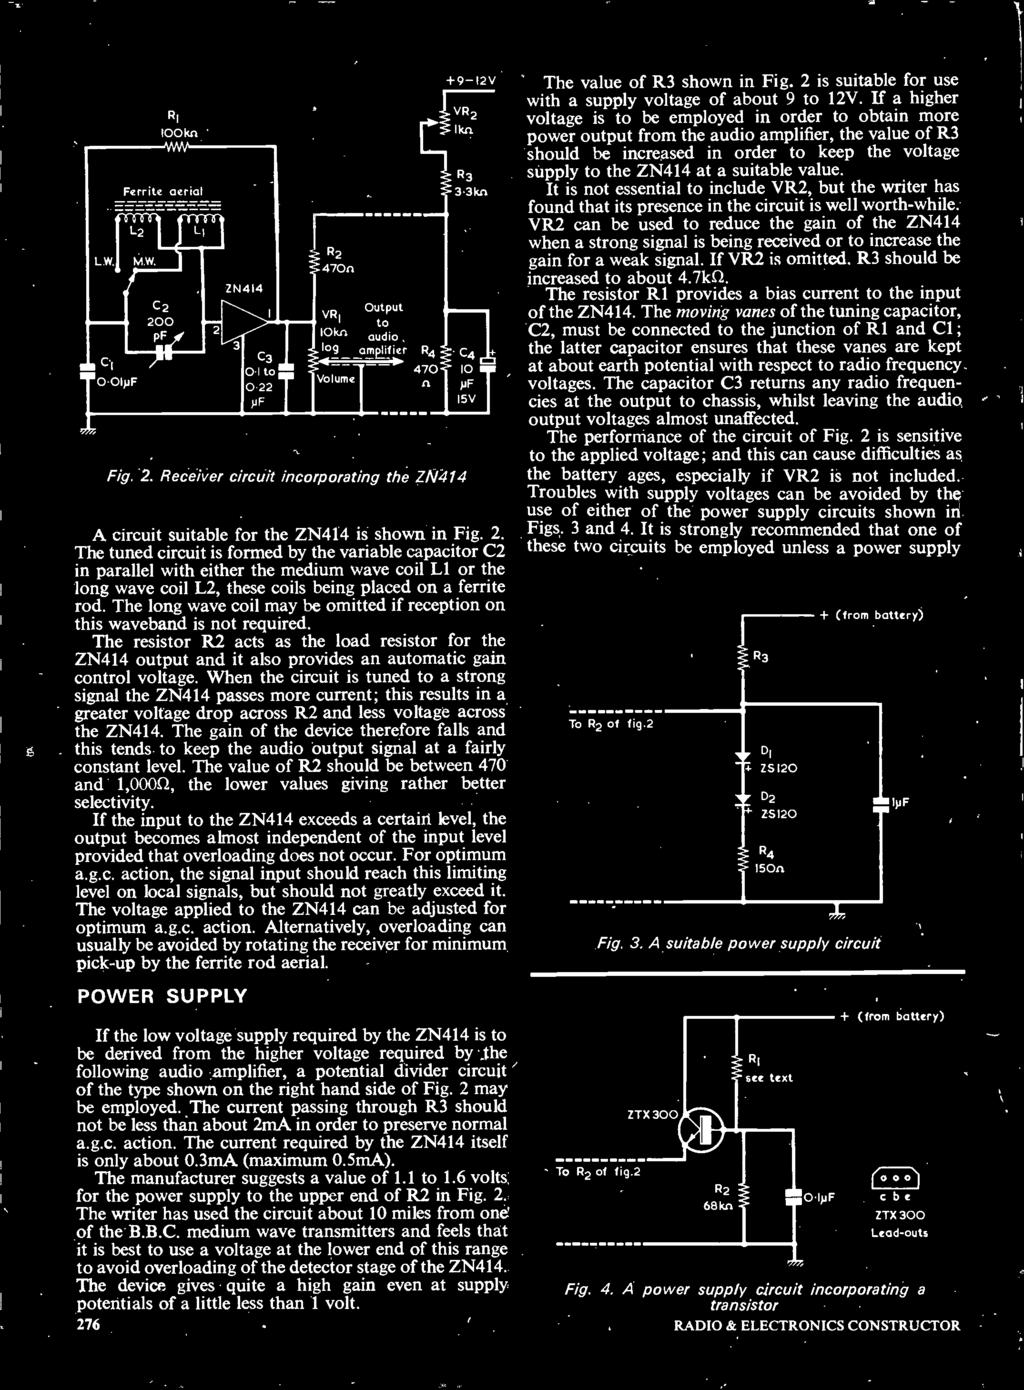 20p December 1973 Wyvern The L30 Watt Stereo Amplifier Also Dire G838 Owner39s Club O View Topic Wiring Diagram When Circuit Is Tuned To A Strong Signal Zn414 Passes More Current This